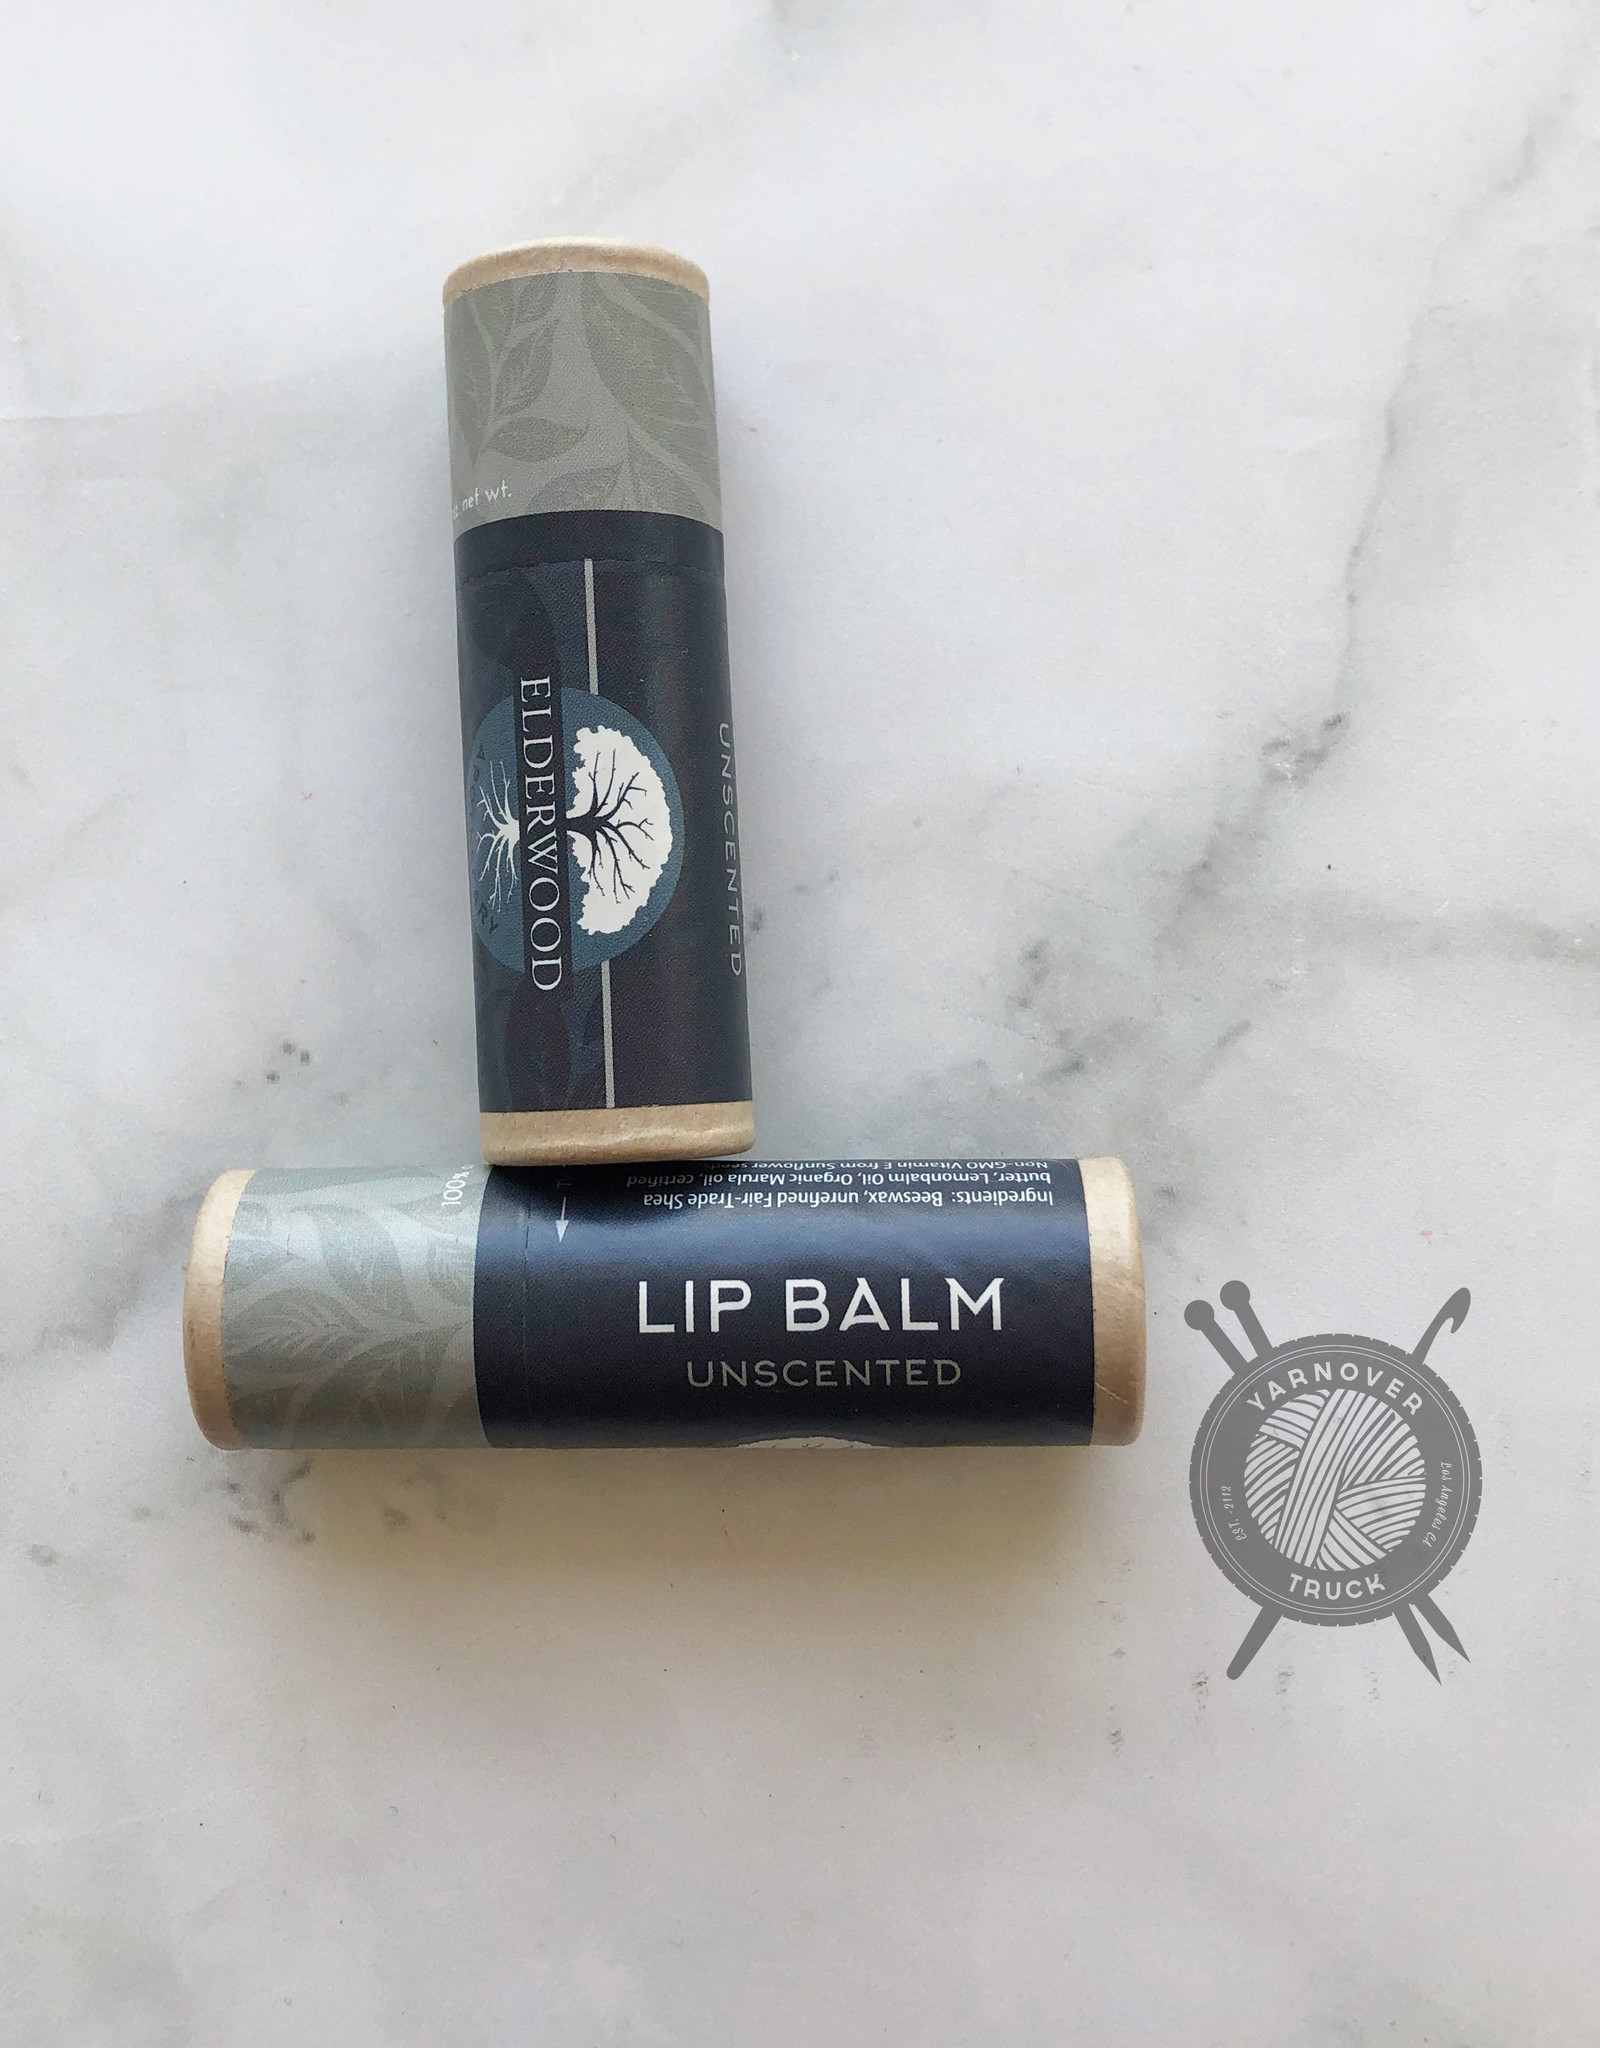 Unscented Lip Balm from Elderwood Apothecary